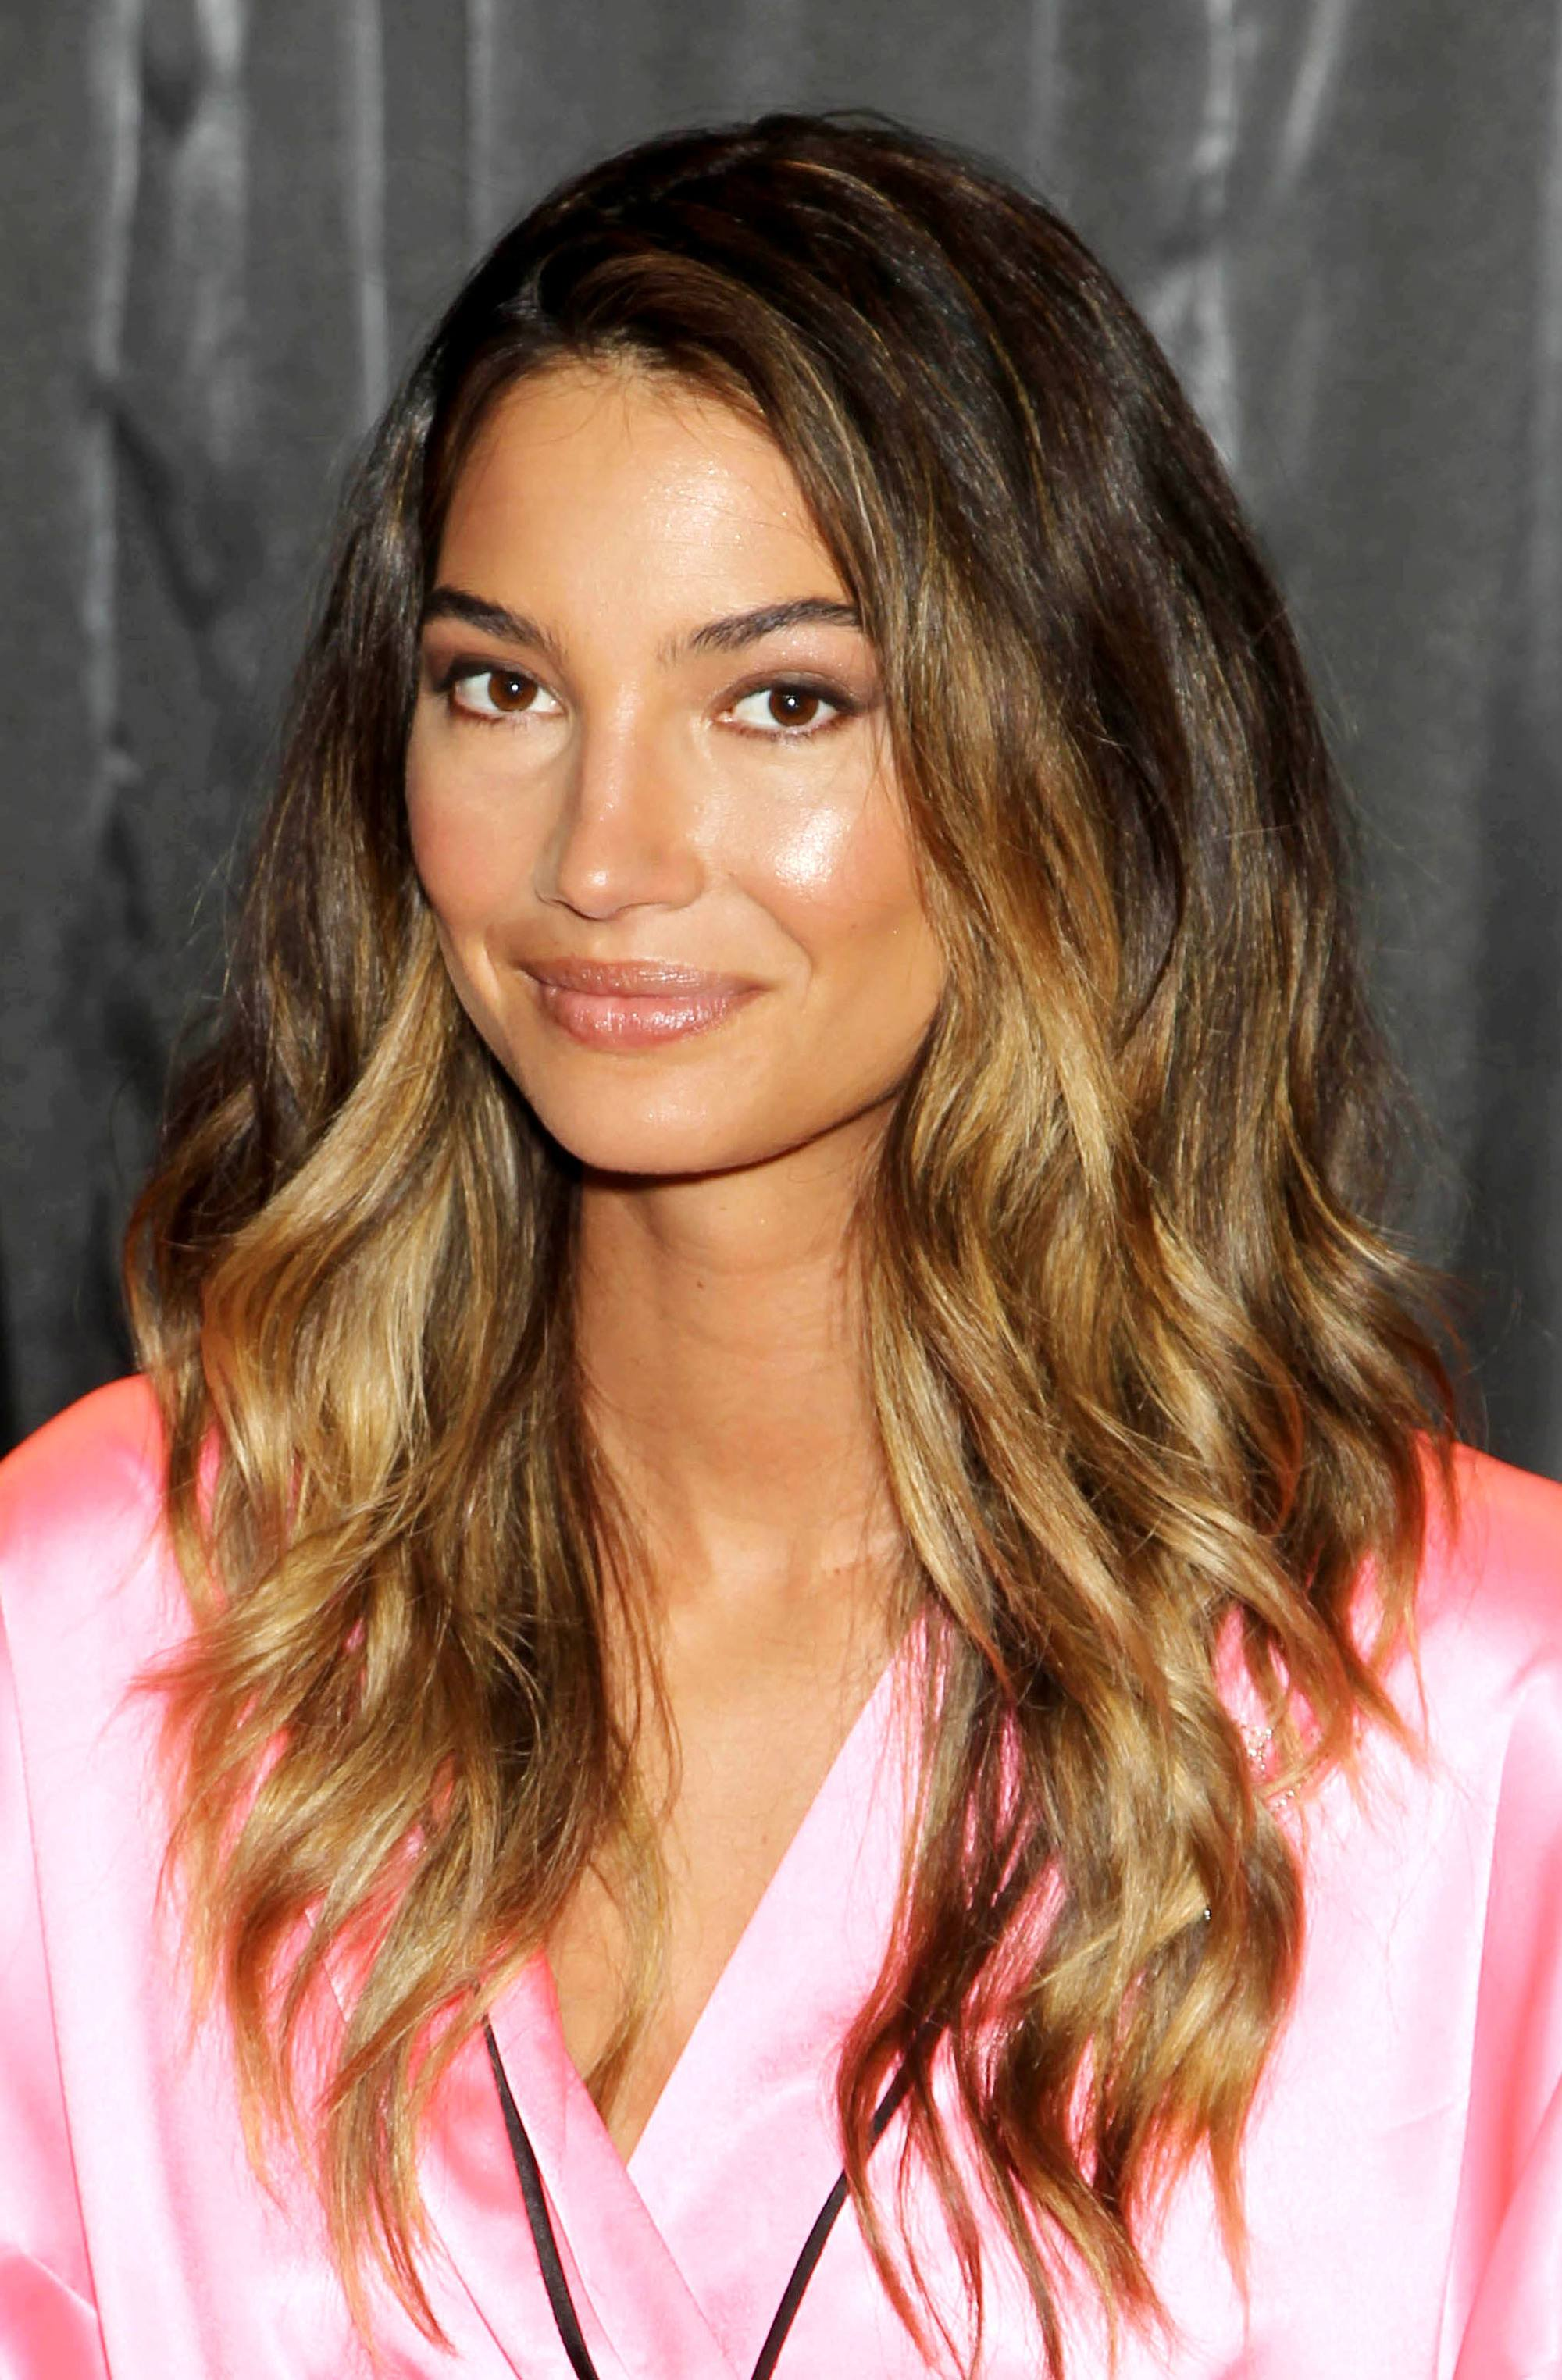 Lily Aldridge con mechas californianas